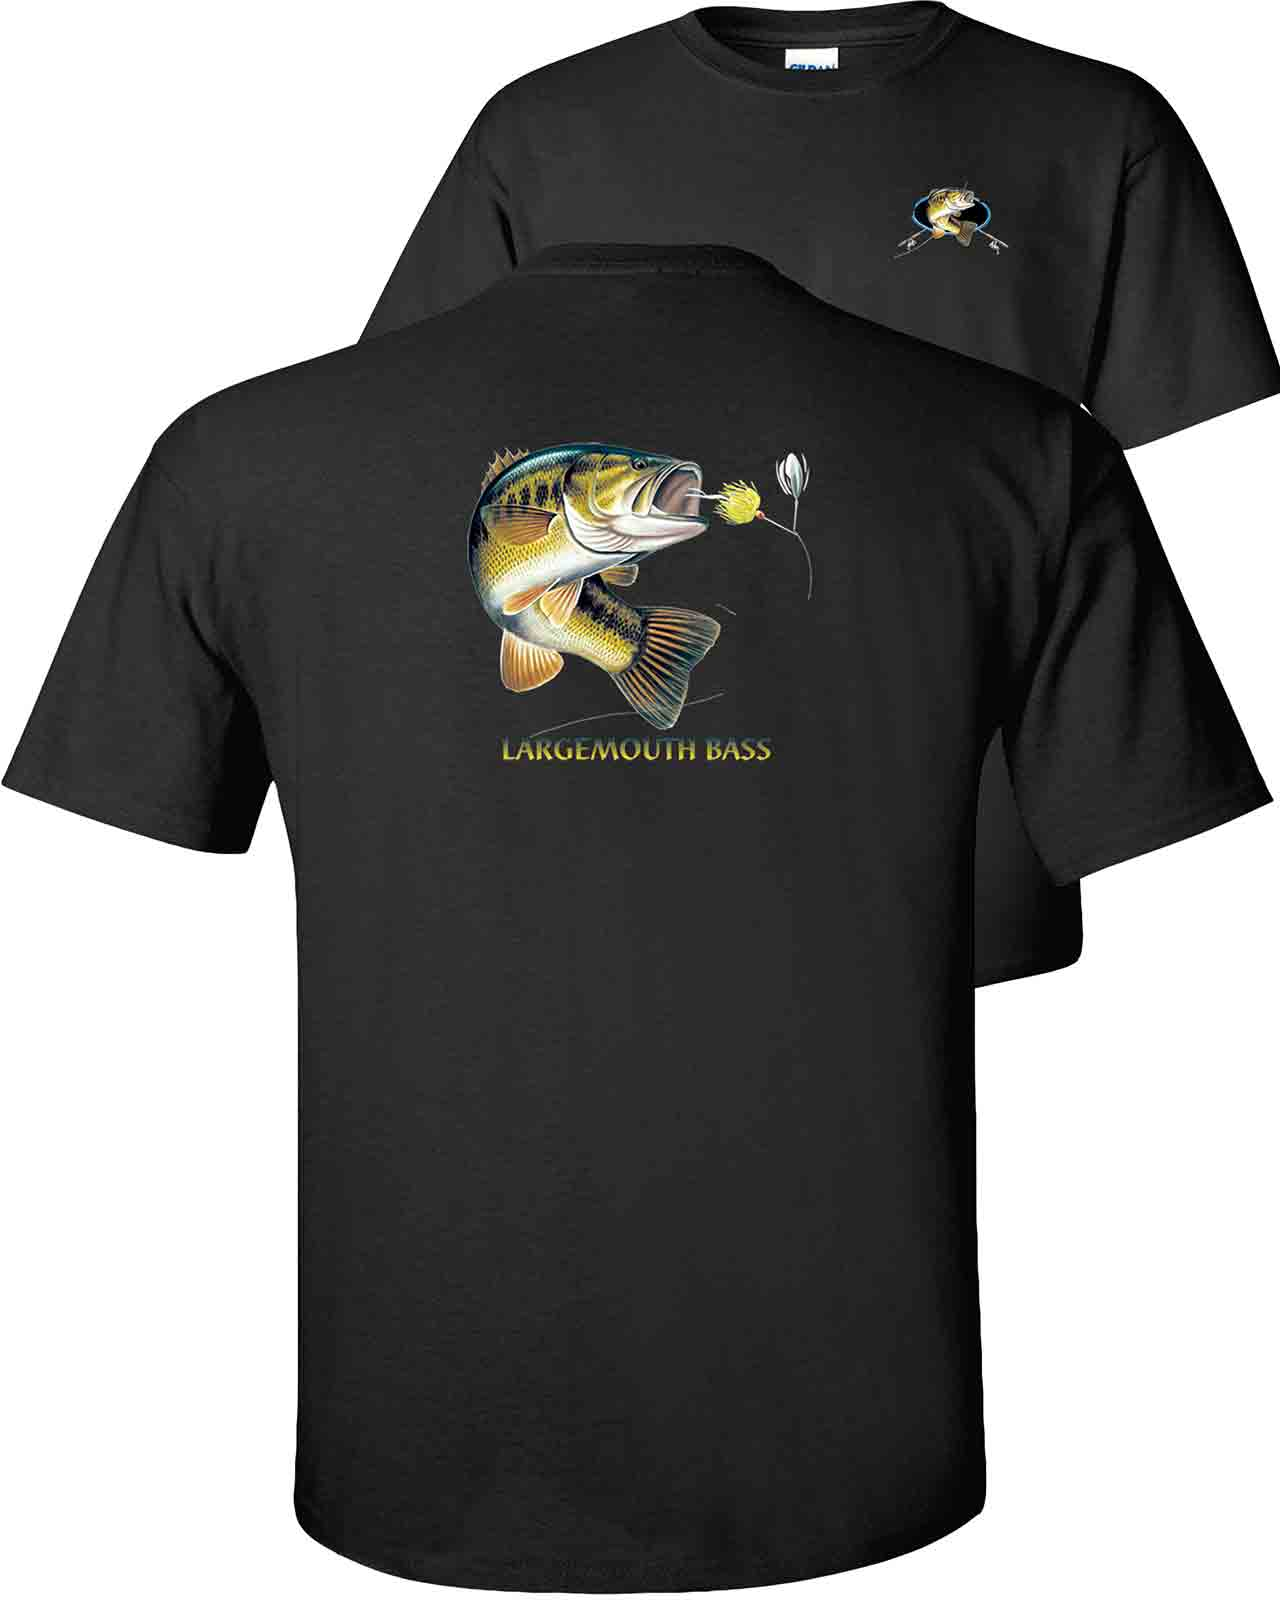 Largemouth-Bass-Going-For-Lure-Profile-Fishing---black.jpg